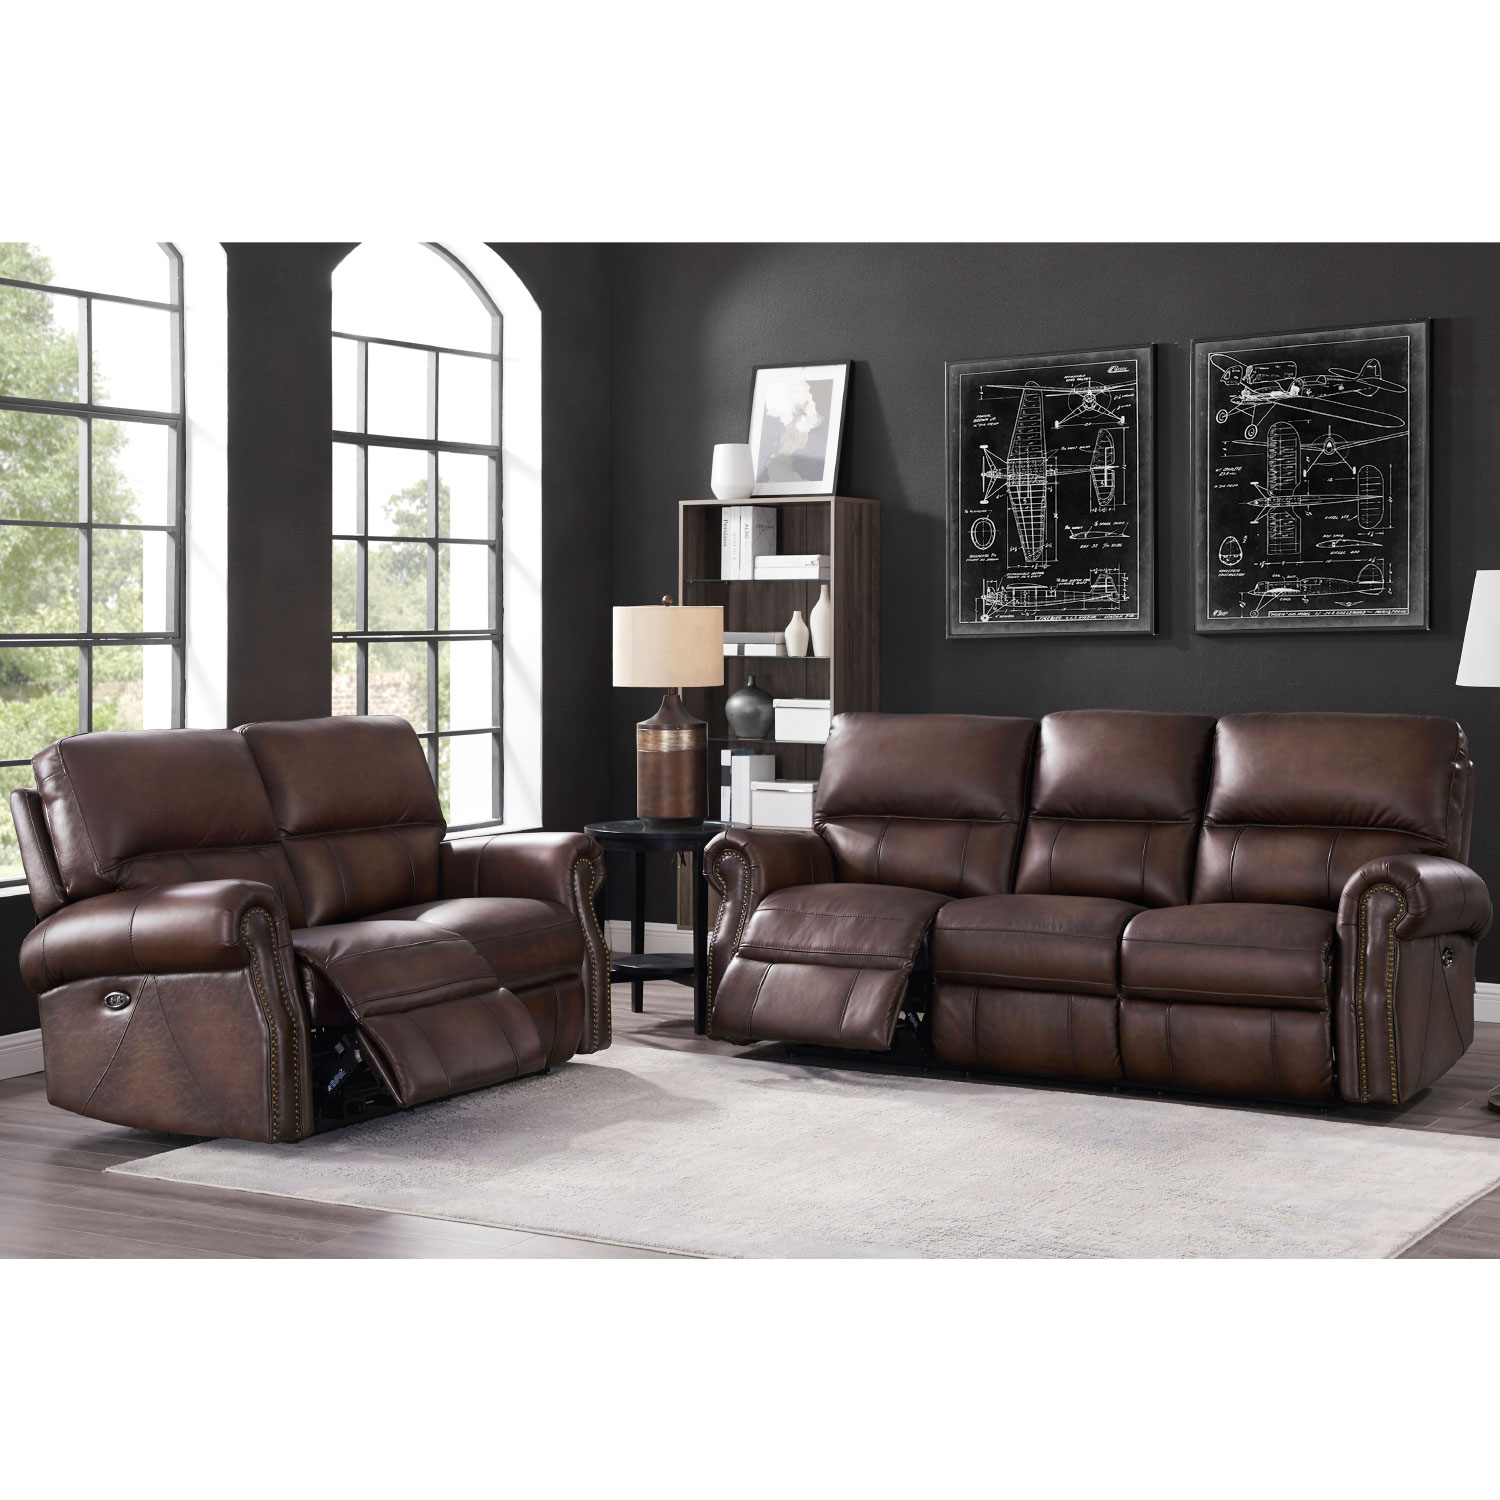 Surprising Raymond Power Reclining Loveseat W Usb Port In Concord Walnut Leather By Hydeline Leather Ocoug Best Dining Table And Chair Ideas Images Ocougorg